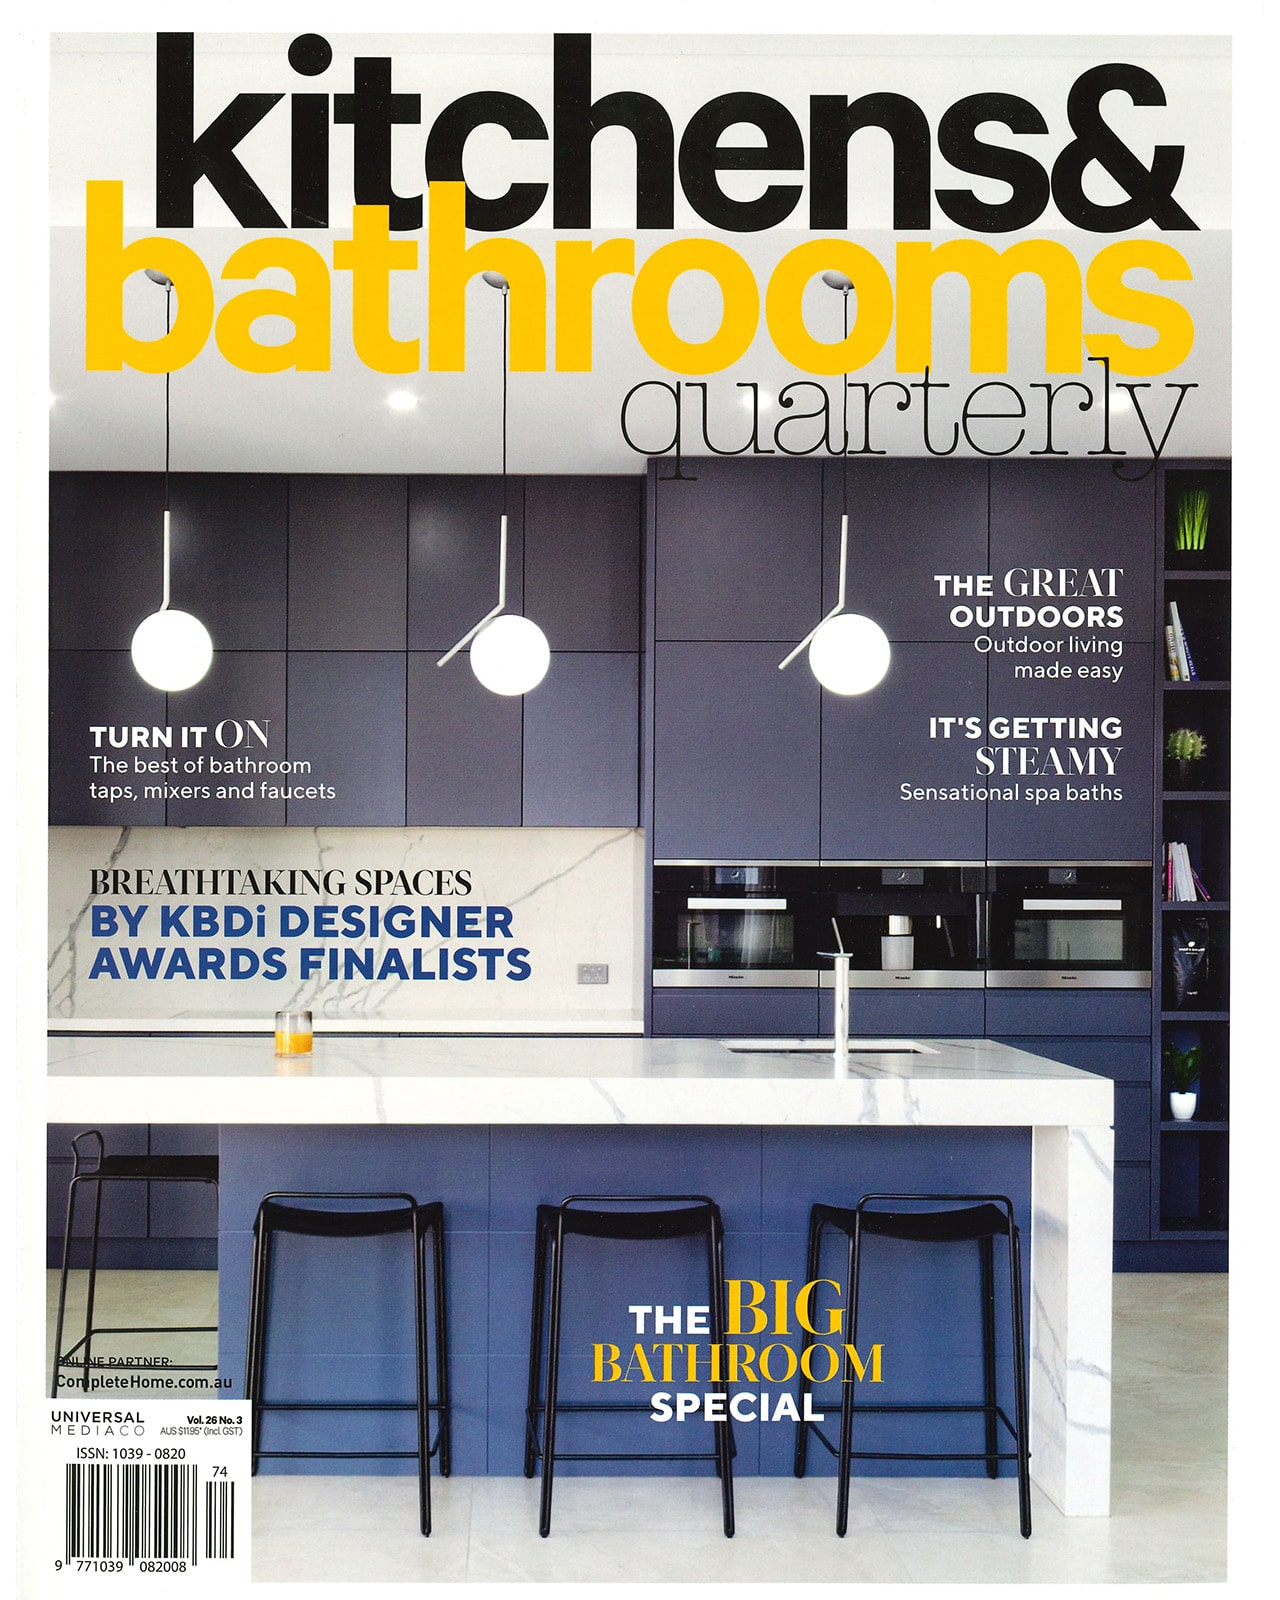 Studio Black Interiors featured in Kitchens and Bathrooms Quarterly Magazine.